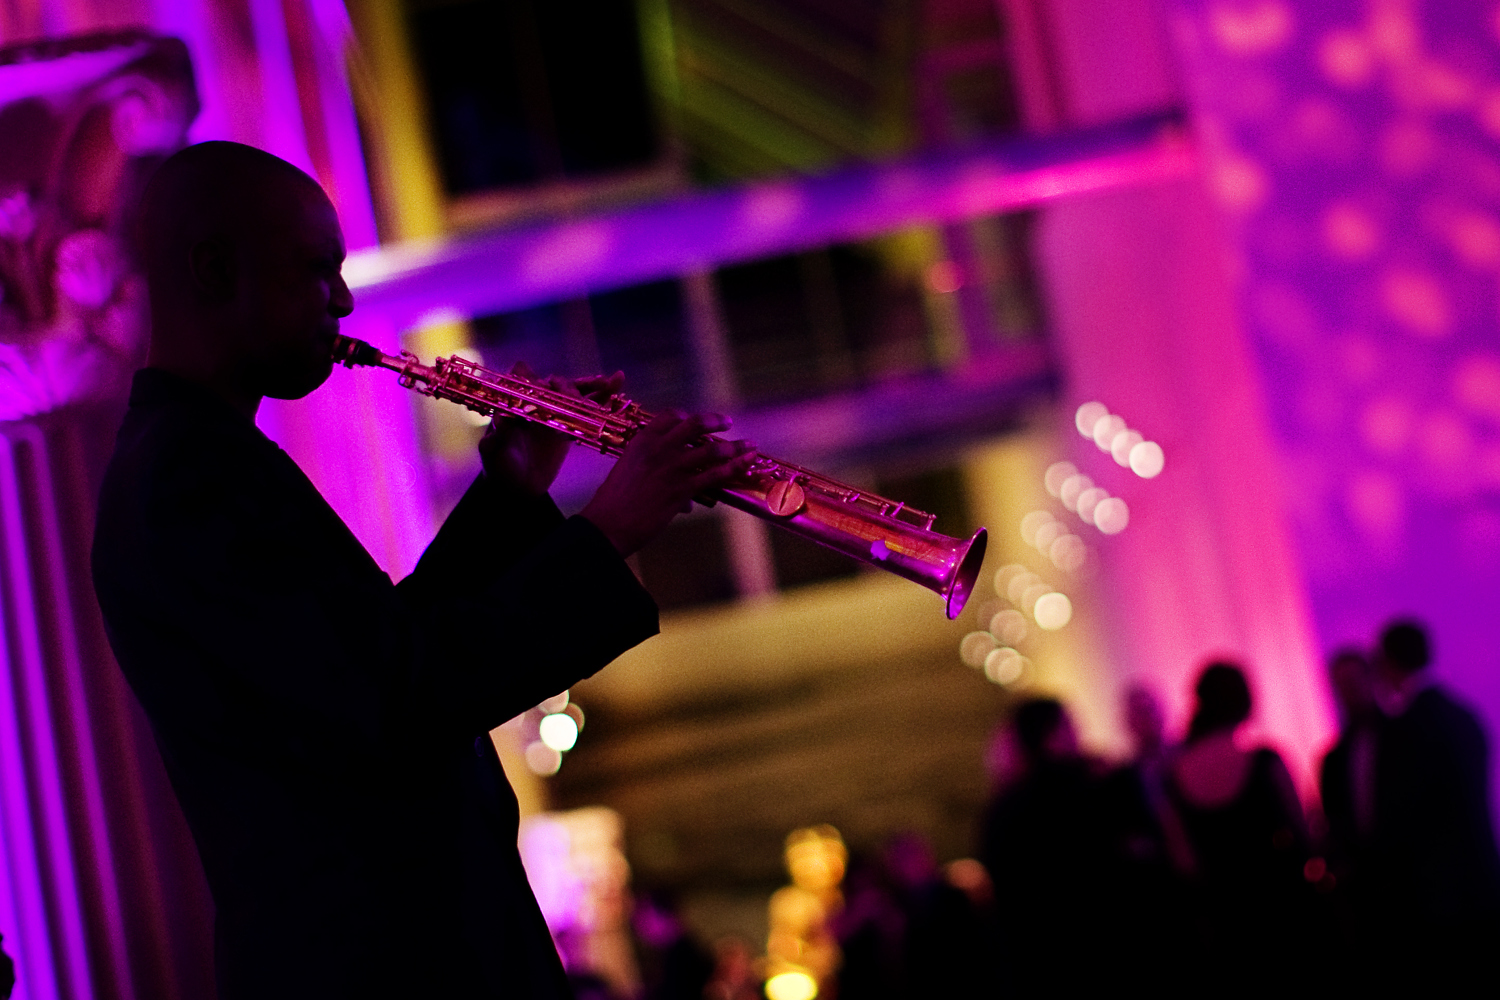 saxophone plays at event